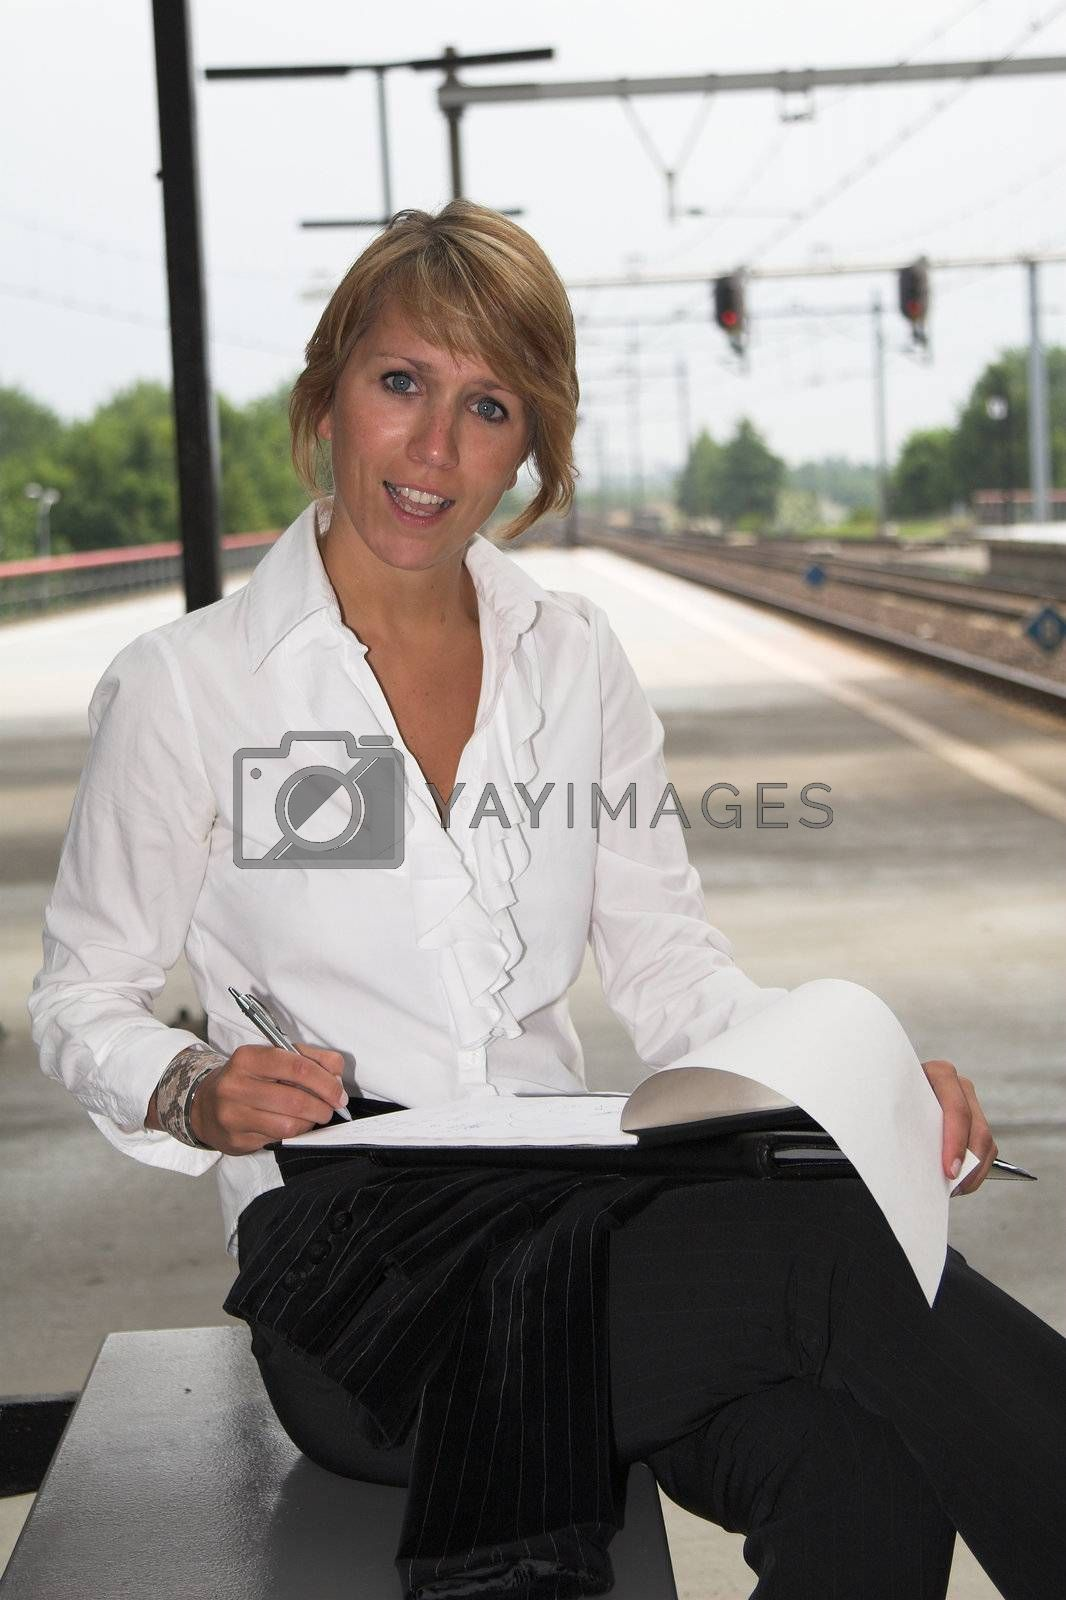 Businesswoman working at the station while waiting for the train to arrive